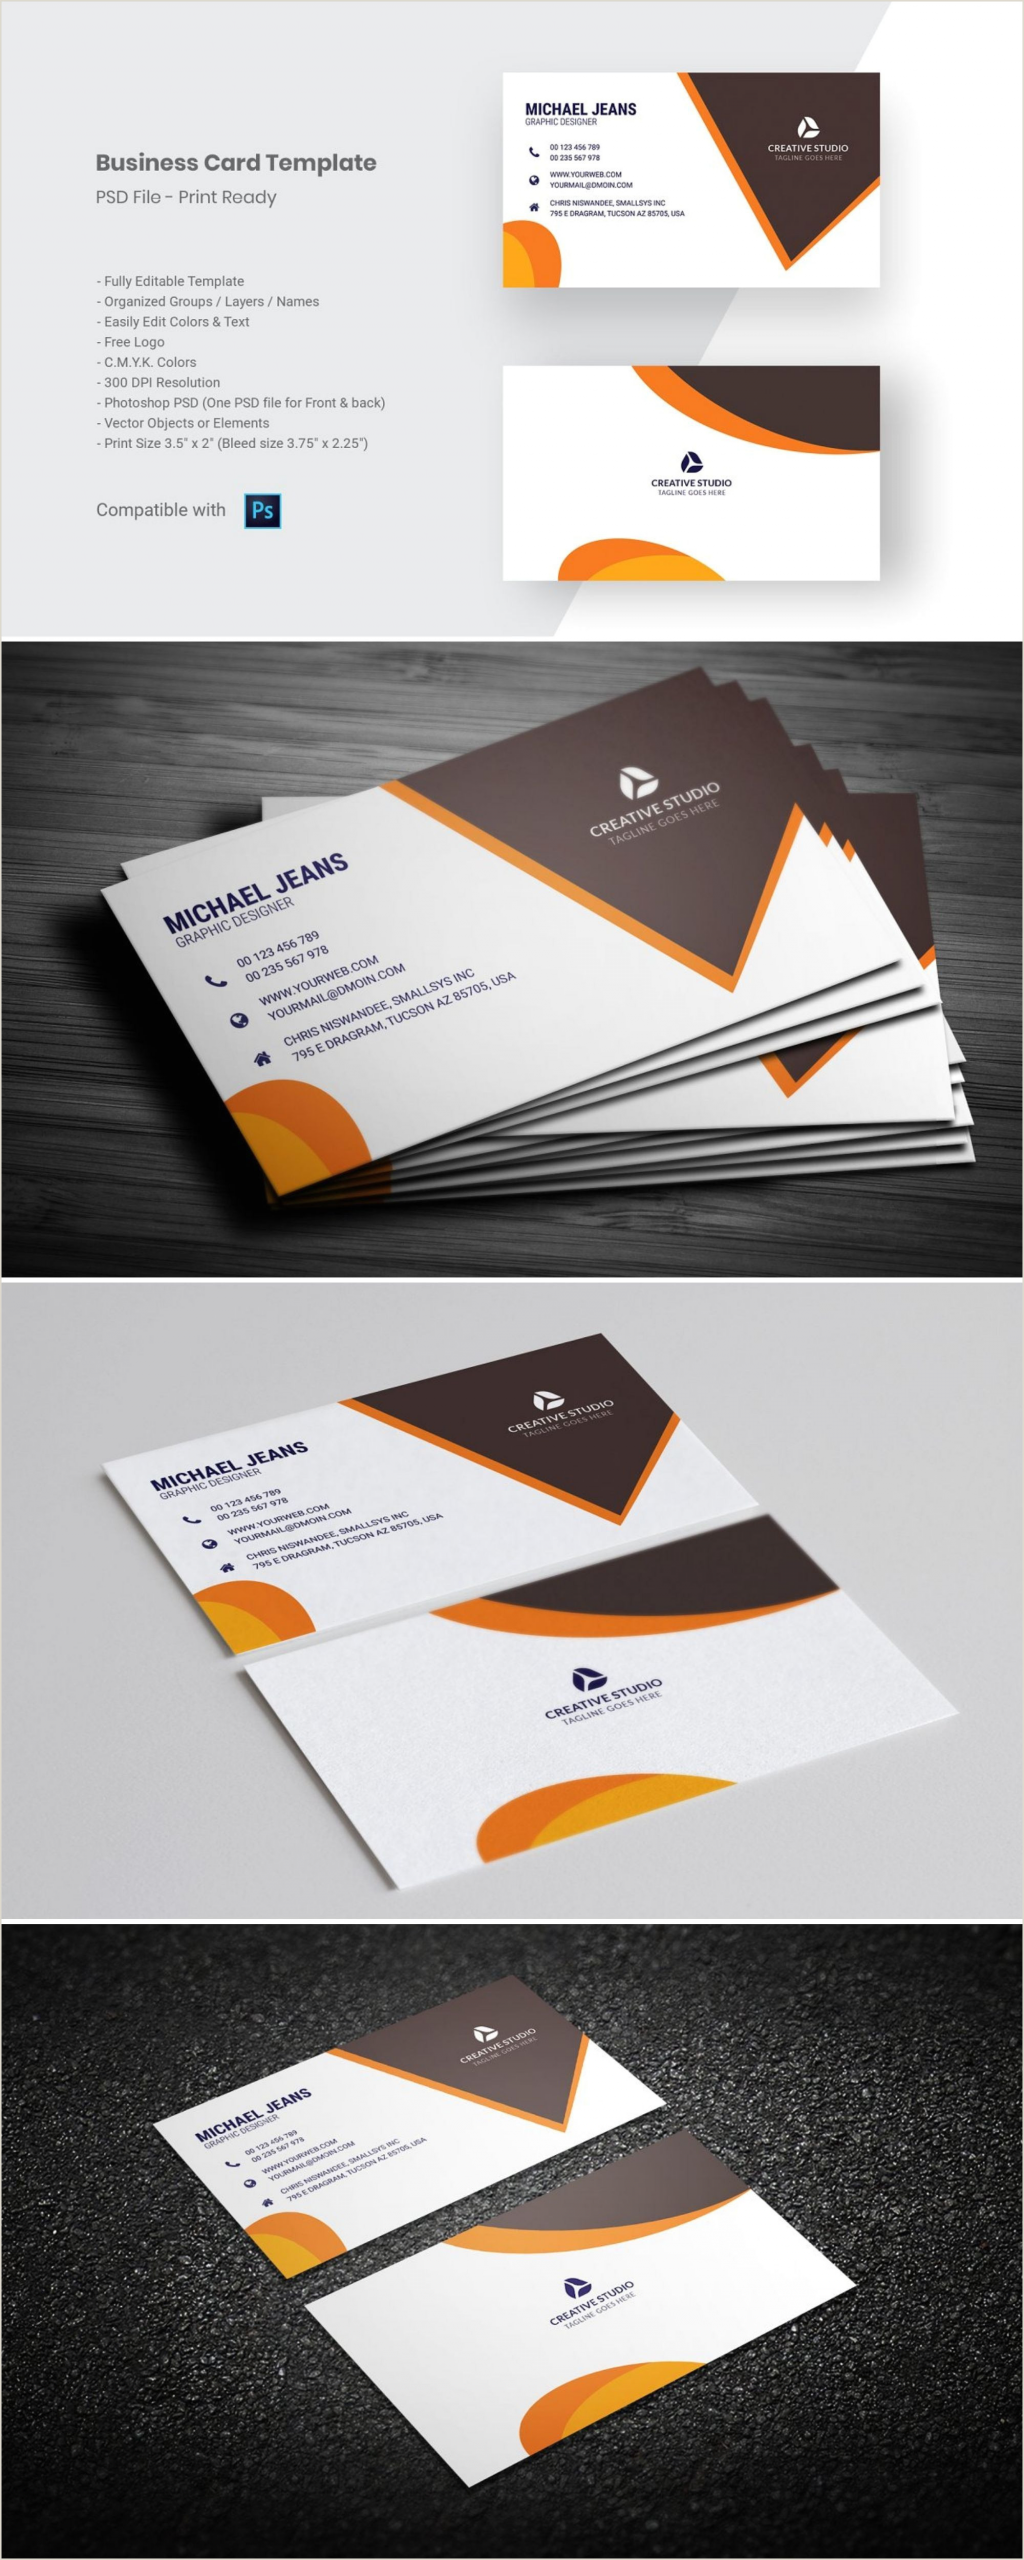 Unique Marketing Business Cards Modern Business Card Template